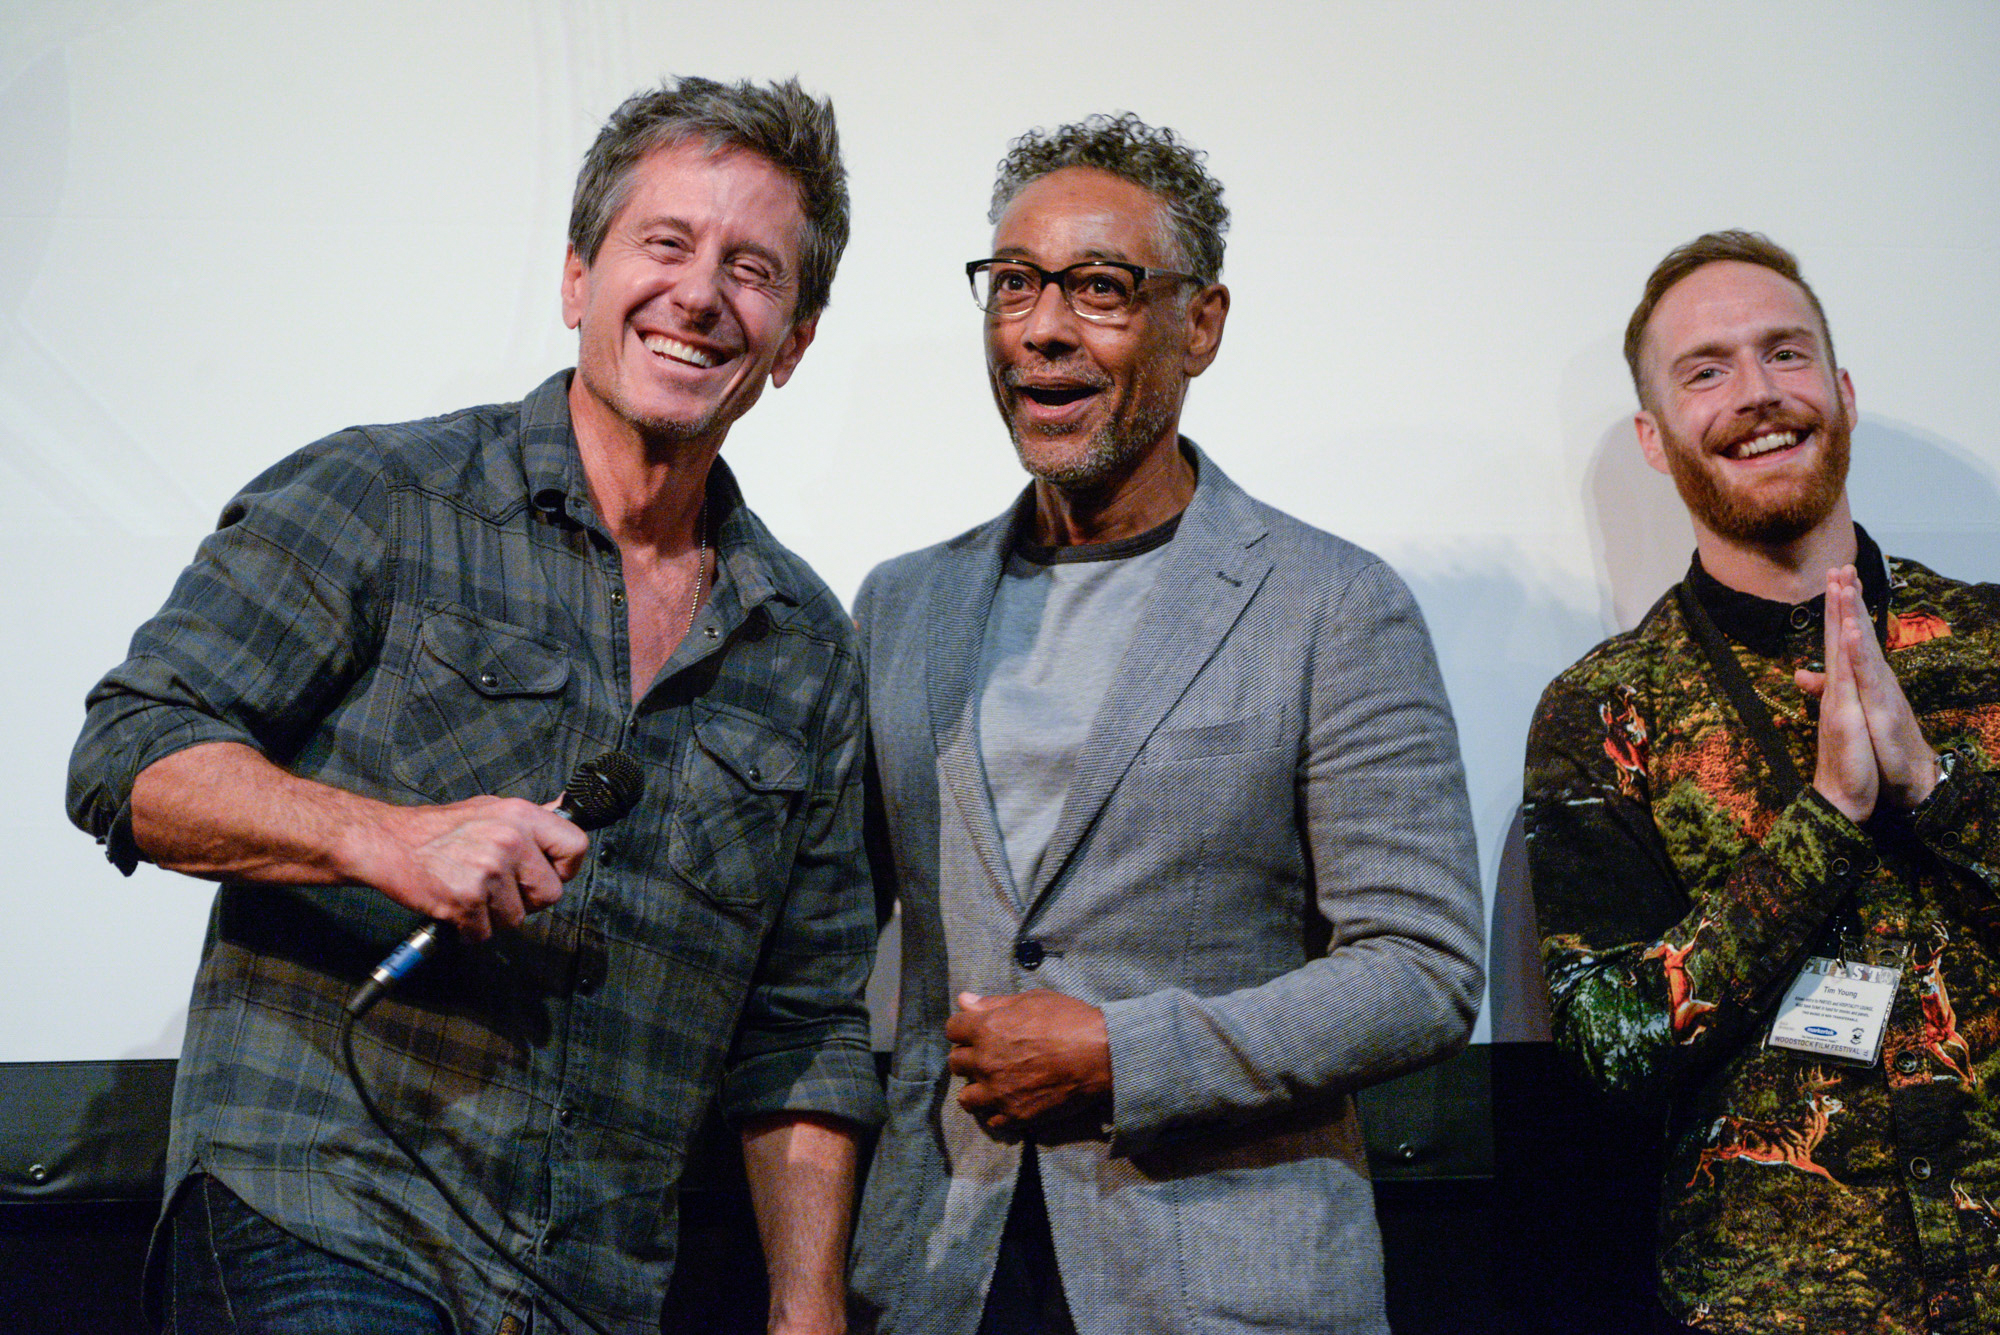 Michael Berry, Giancarlo Esposito and Tim Young. Photo by: Dion Ogu